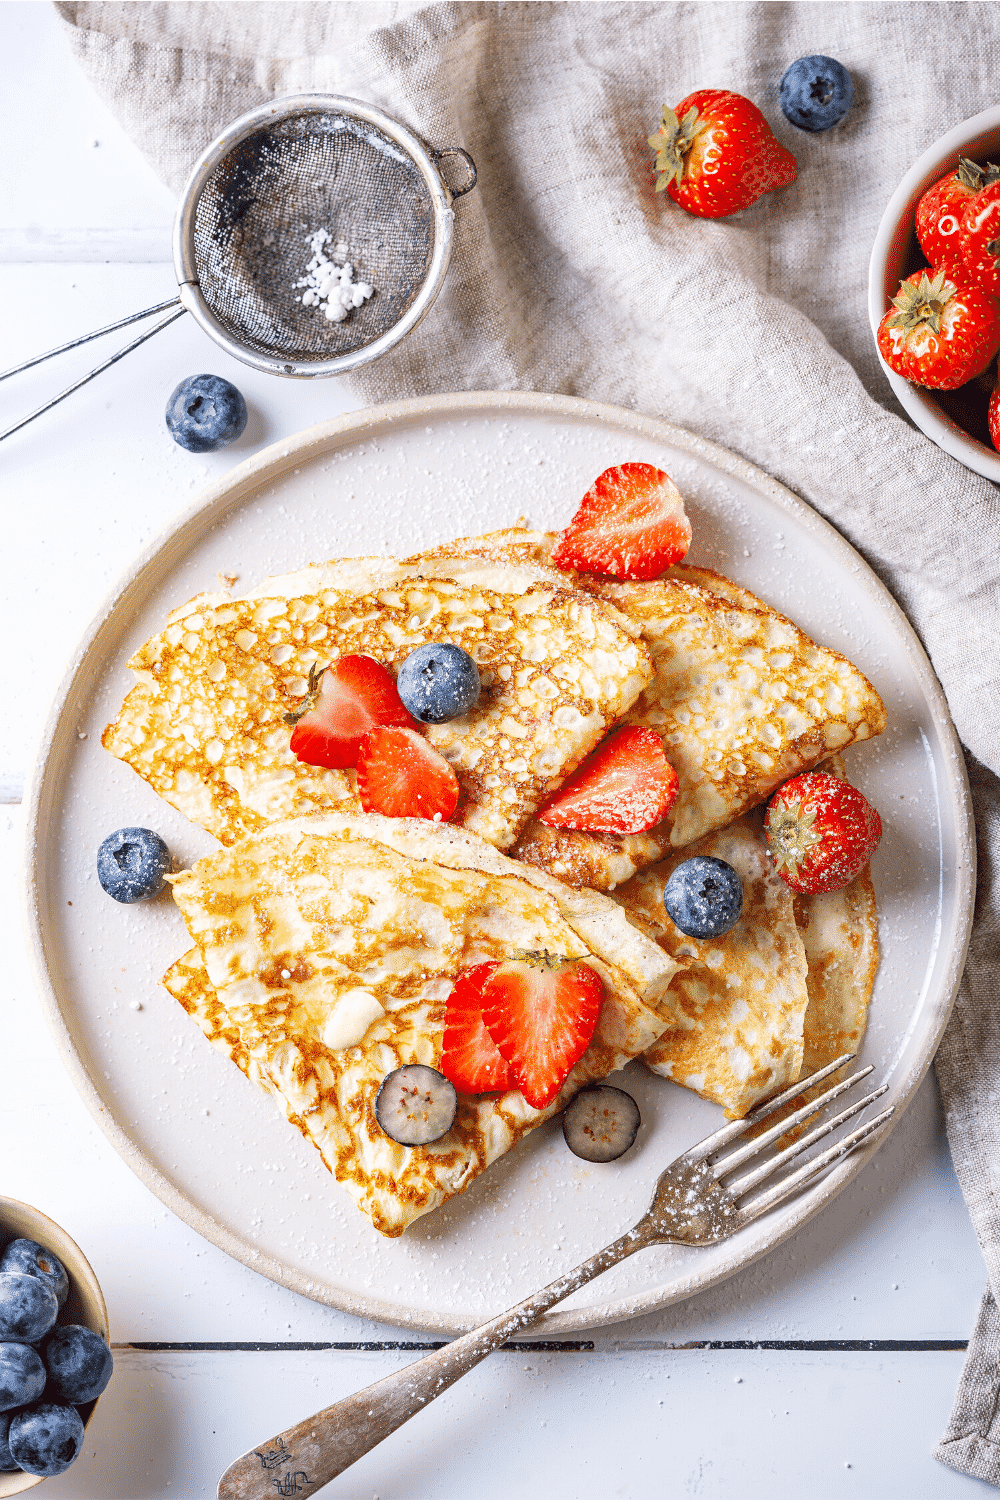 For crêpes overlapping one another on a white plate. They are slices of strawberries and blueberries on top of the crepes.